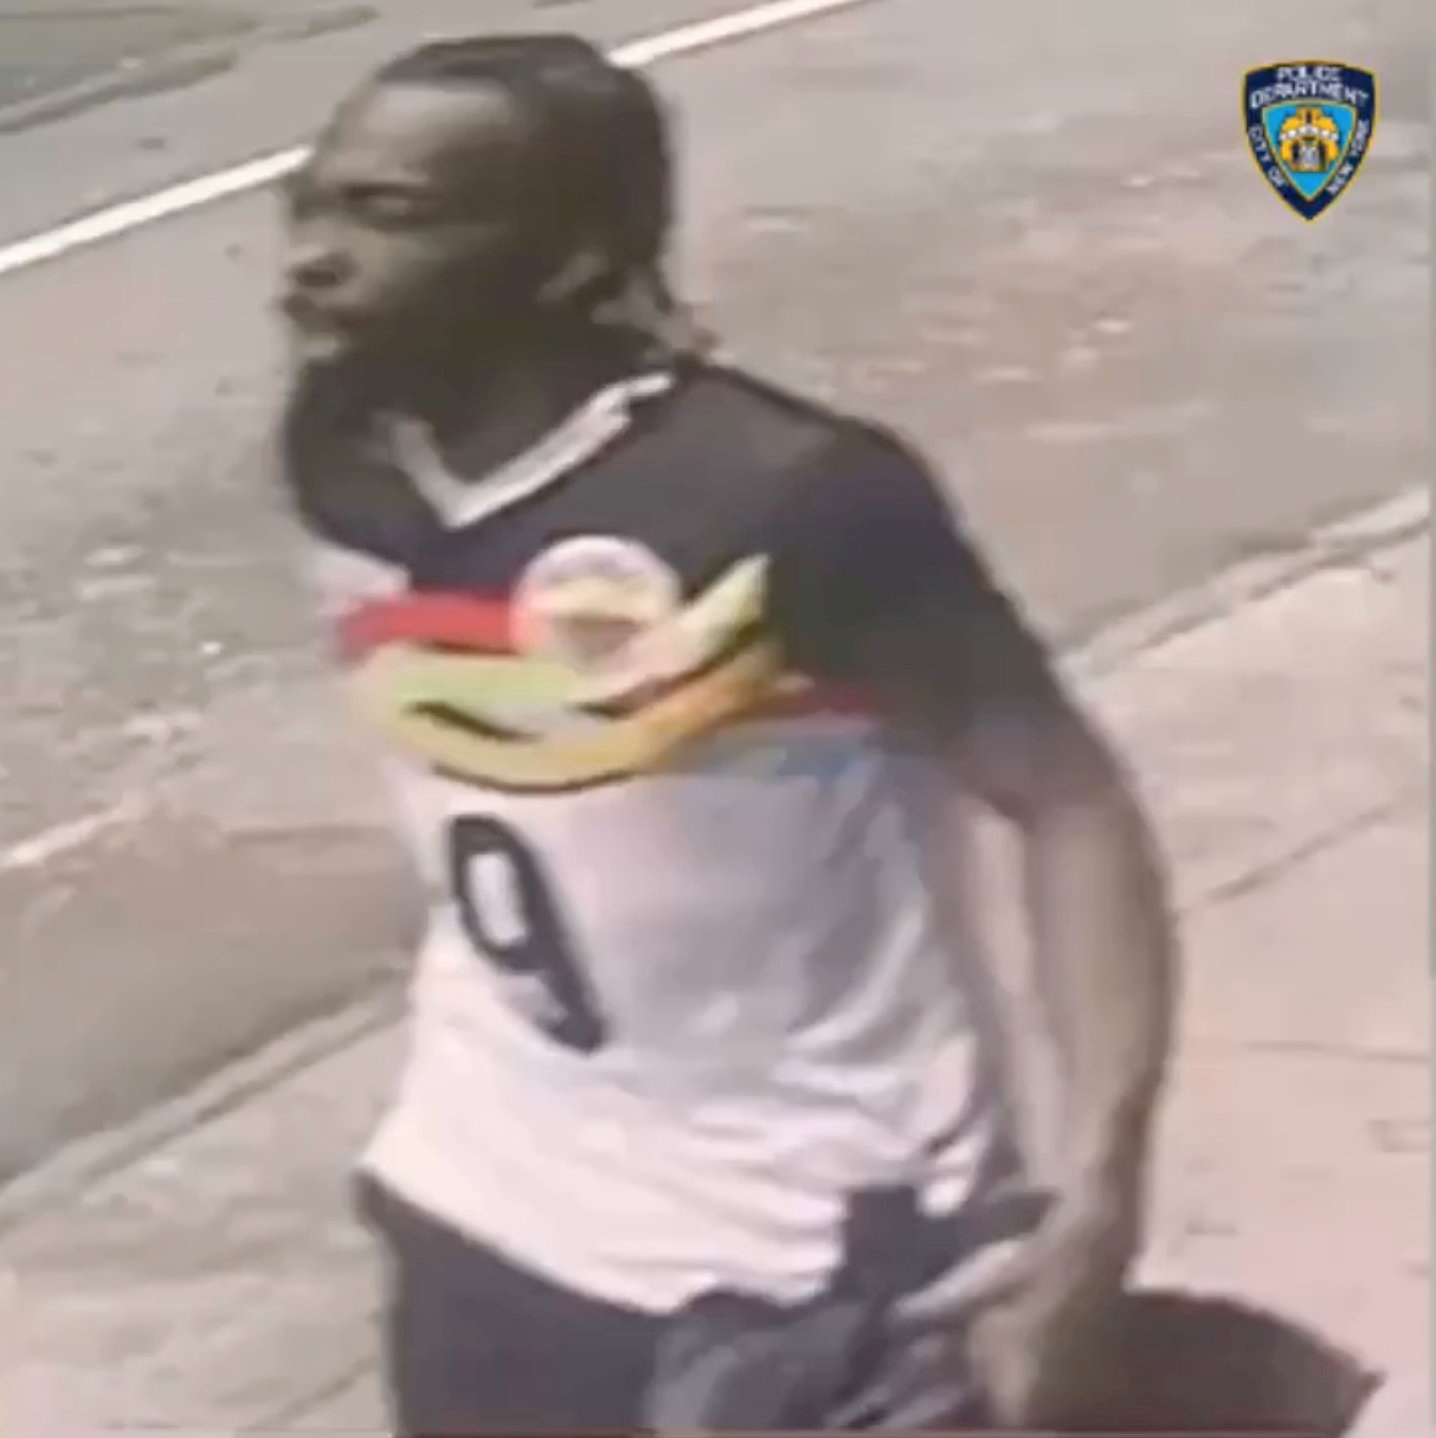 A man, whom police says is connected to a shooting near West 44th Street and 7th Avenue in Manhattan New York, U.S., on May 8, 2021, is seen in this still image taken from a surveillance footage. @NYPDDetectives/via REUTERS